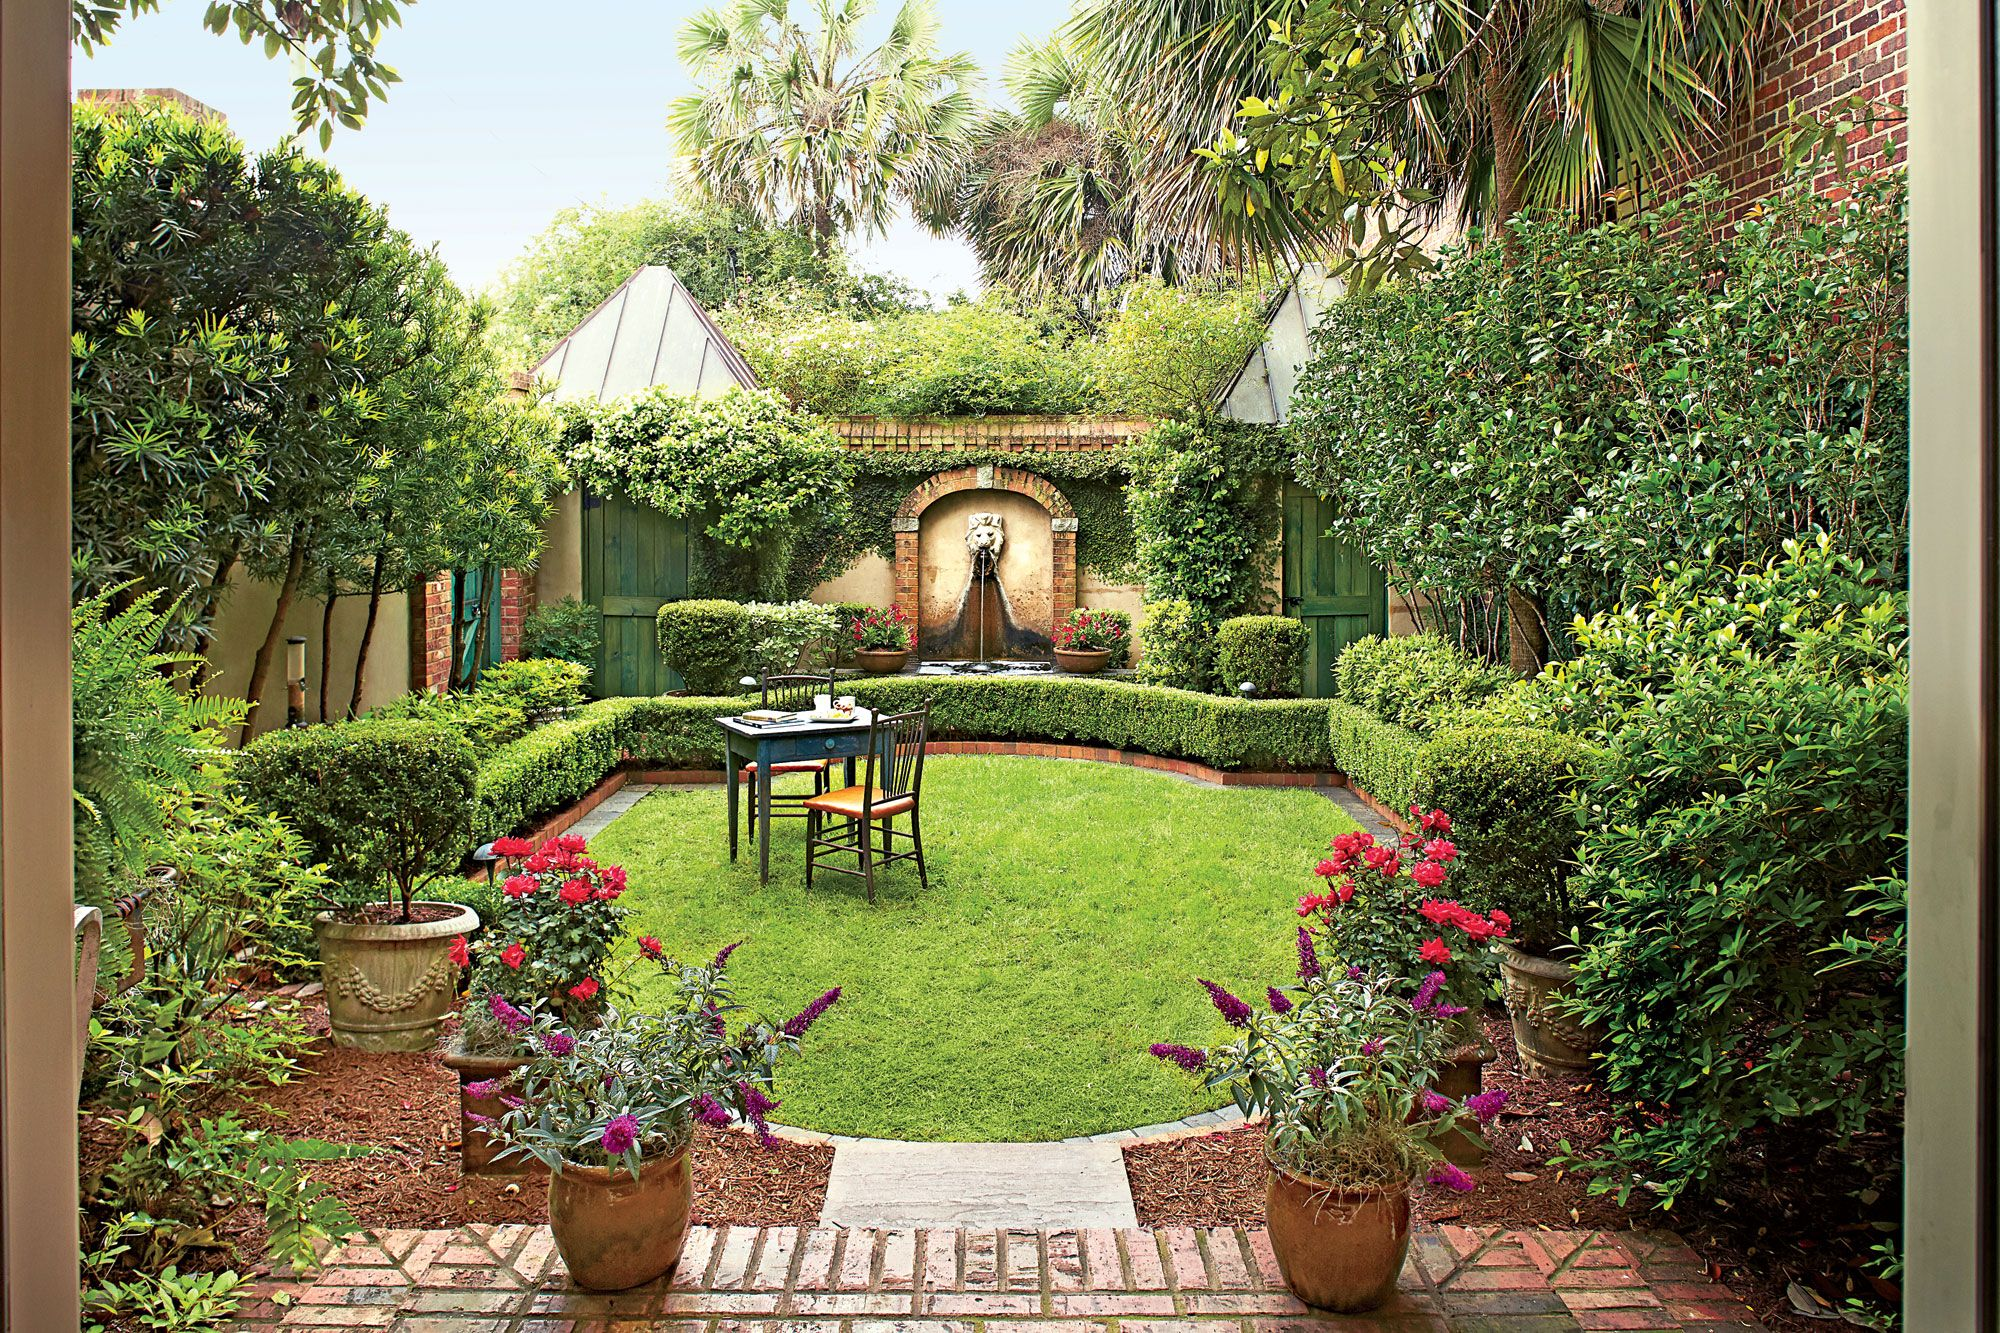 Virginia English Country Garden is part of English Courtyard garden - This romantic Virginia garden is inspired by English cottage style